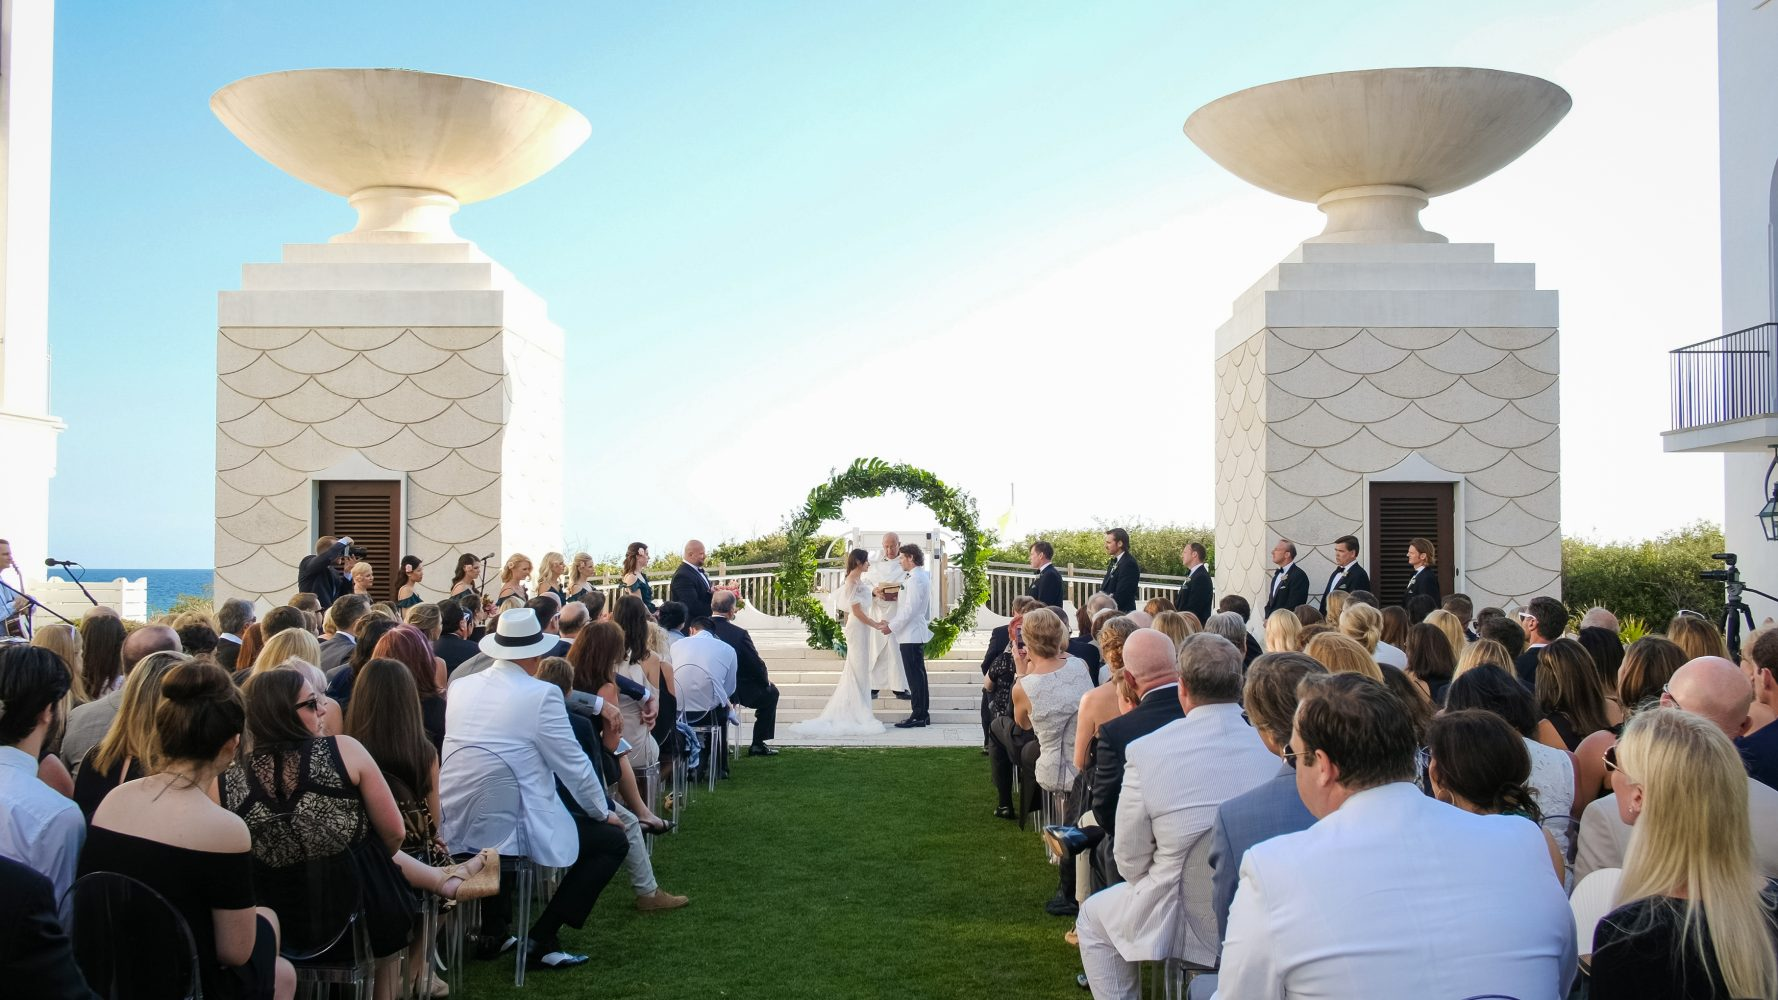 Christina + Brent | Alys Beach, Florida | Alys Beach Gulf Green